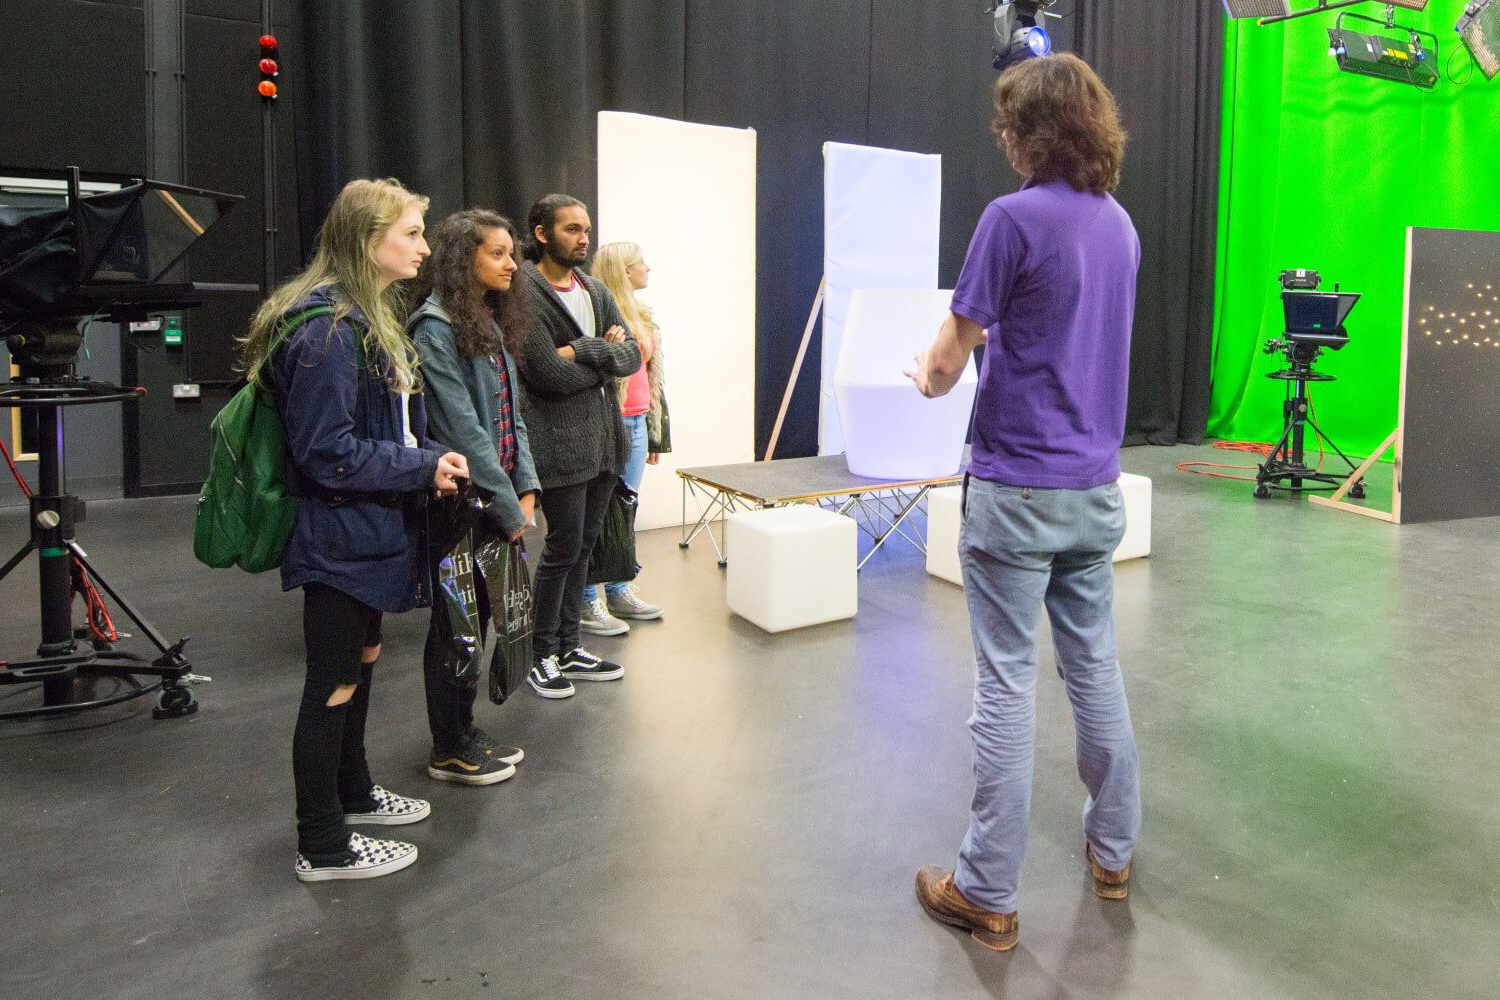 Prospective students receive a tour of the TV studio in Creative Edge during an applicant visit day.